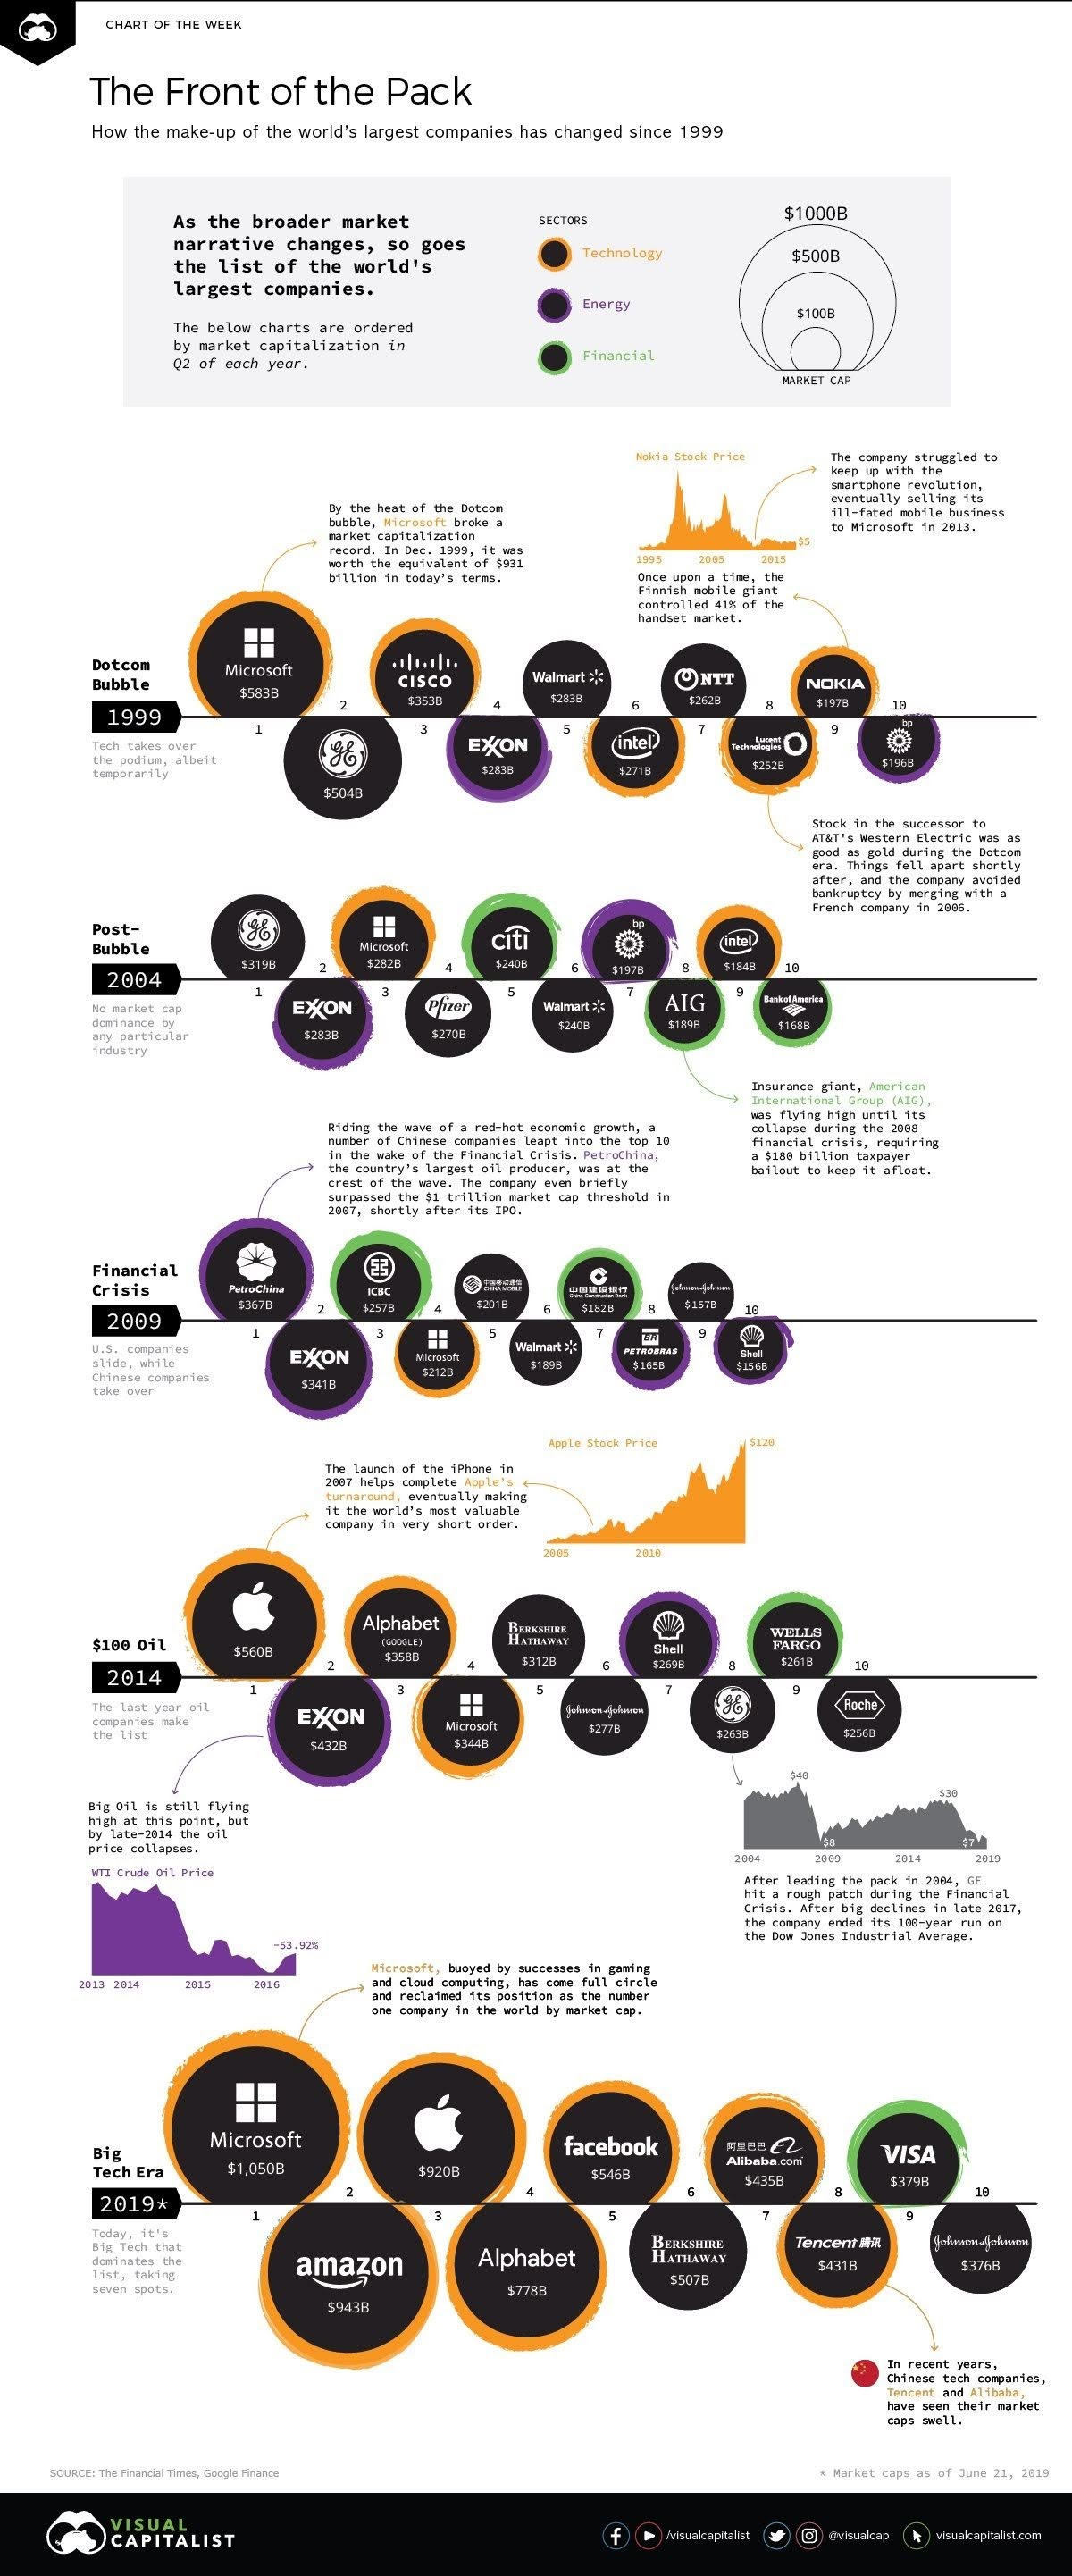 A visual history by Market Cap of the largest companies #infographic